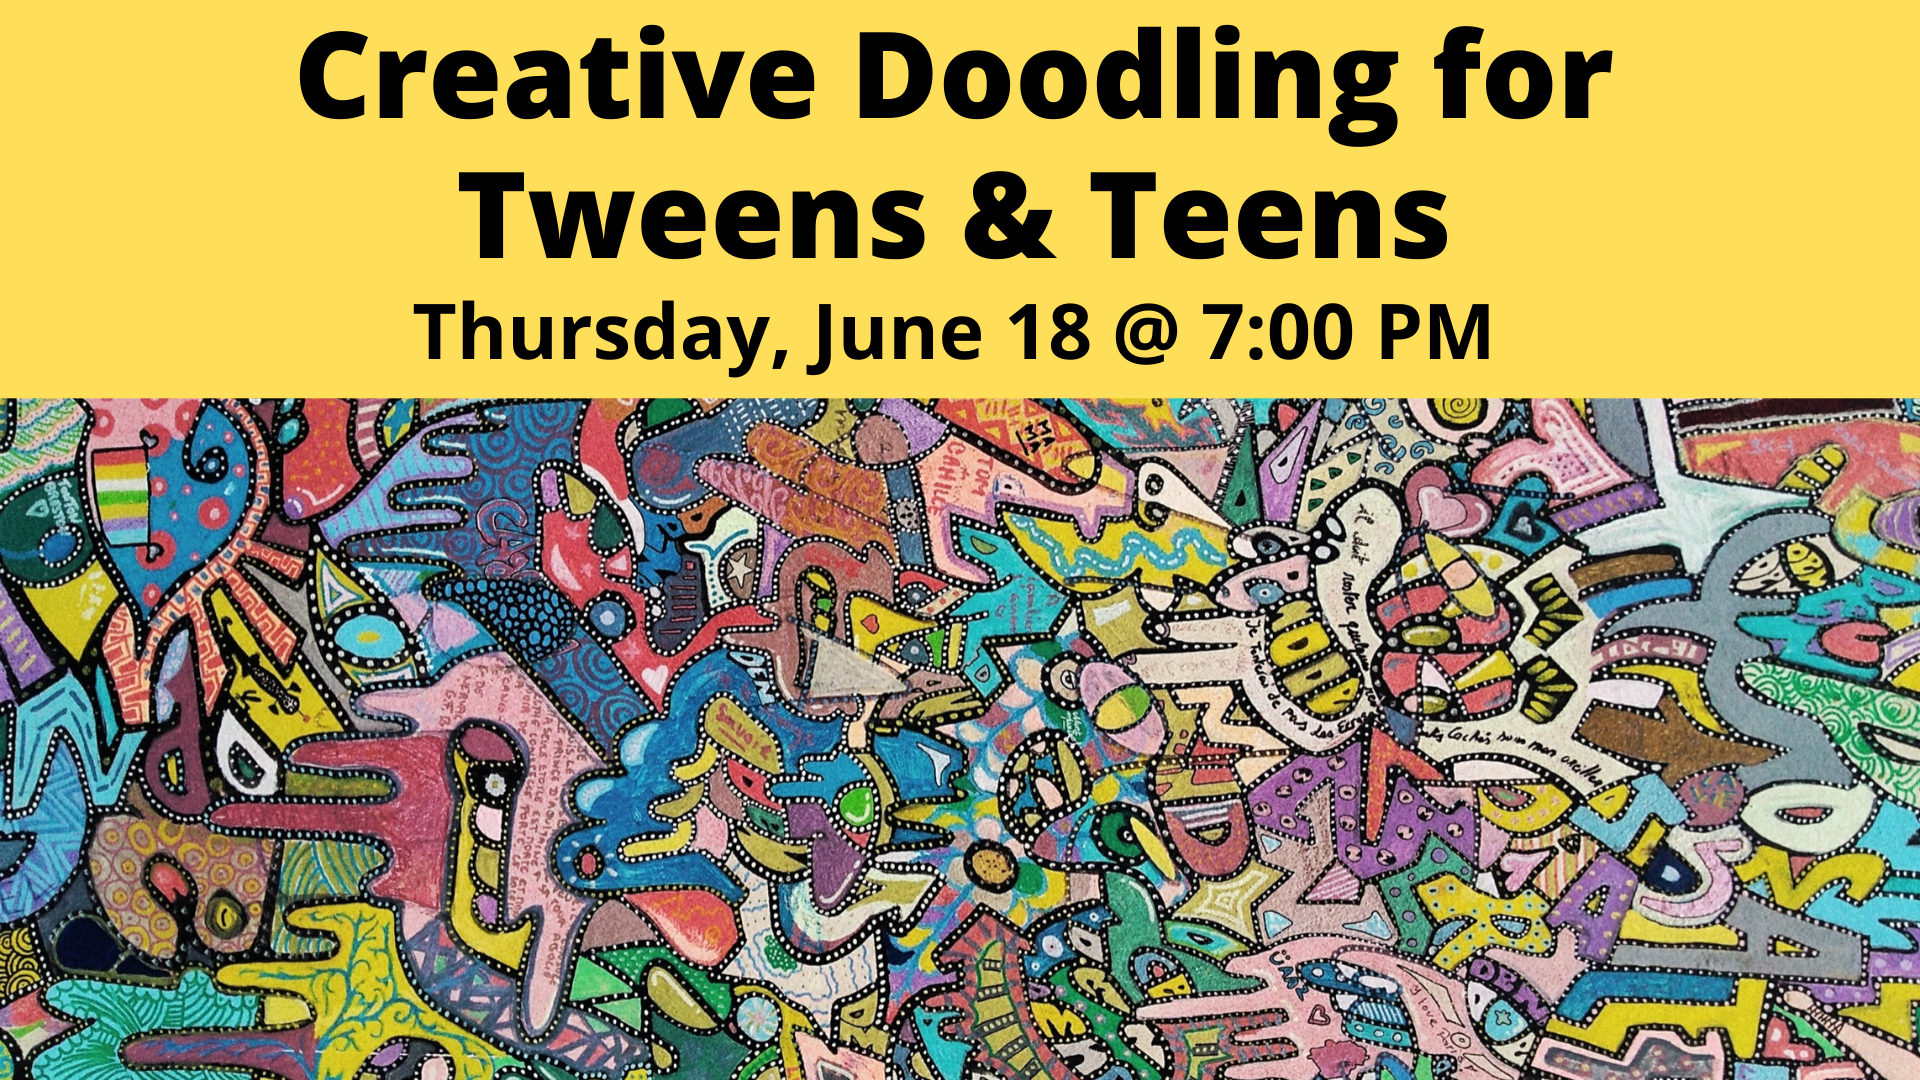 Creative Doodling for Tweens & Teens